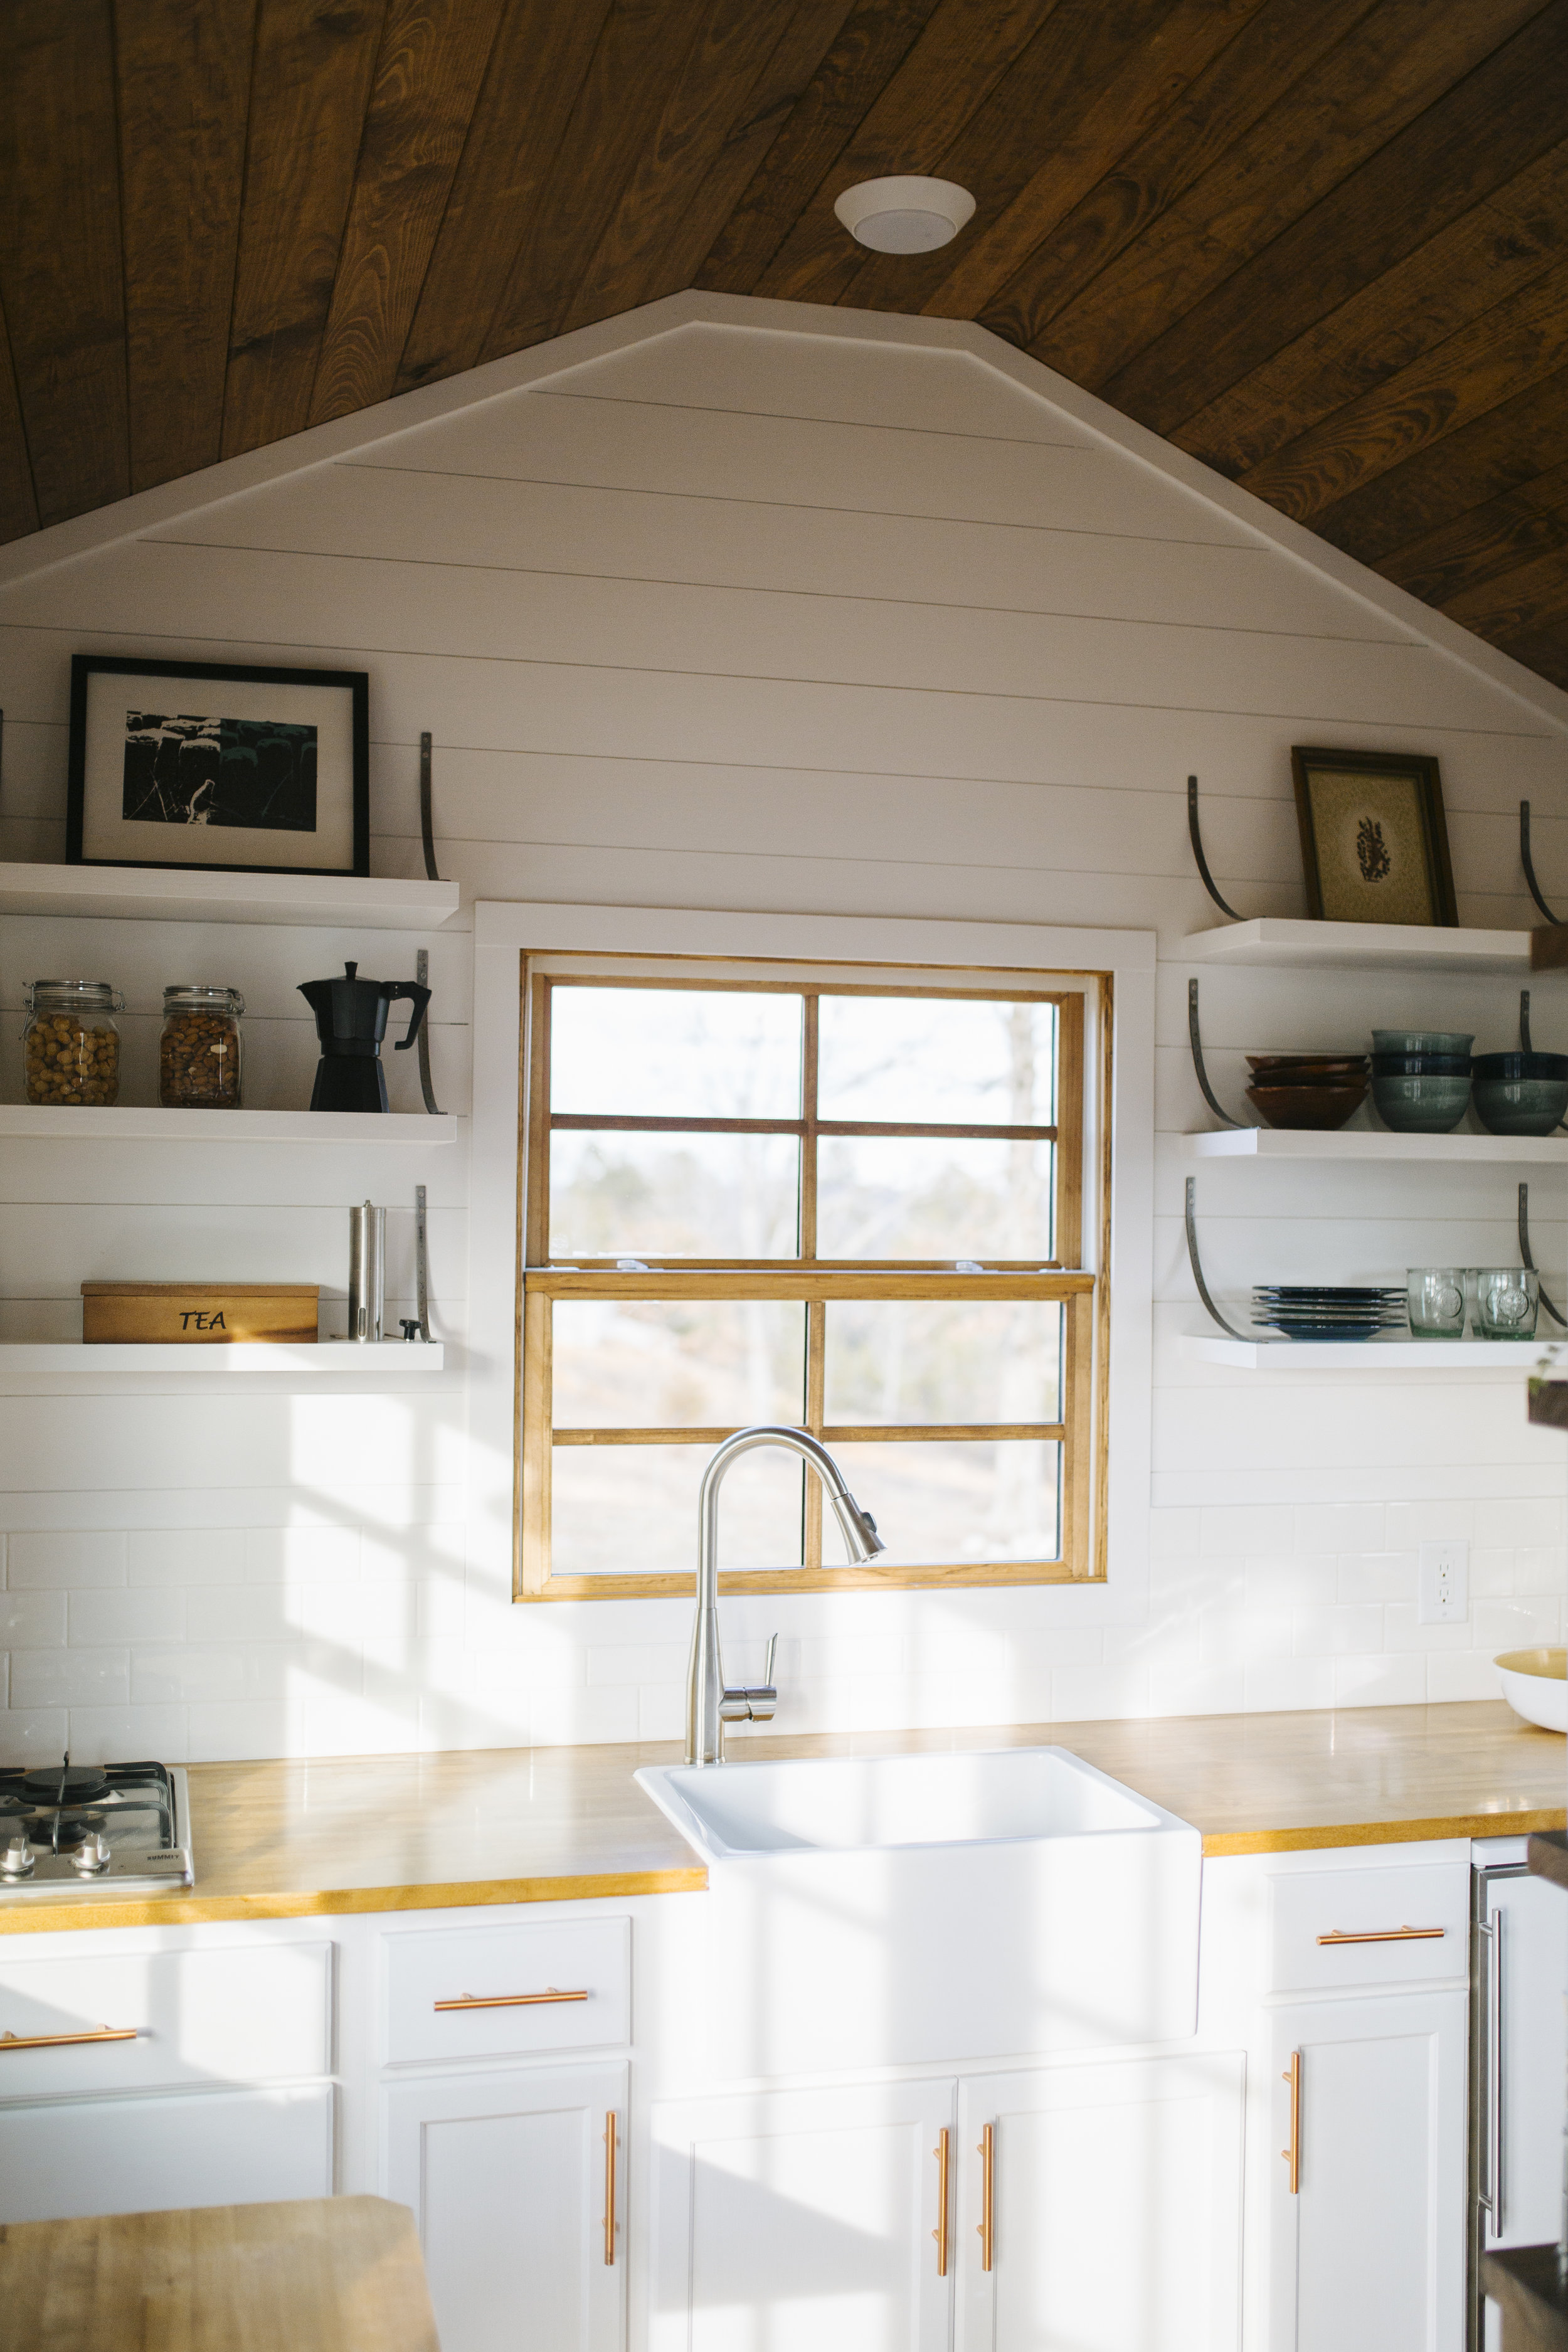 The Monocle by Wind River Tiny Homes - open shelving, custom steel brackets, farmhouse sink, butcher block countertops, shiplap siding